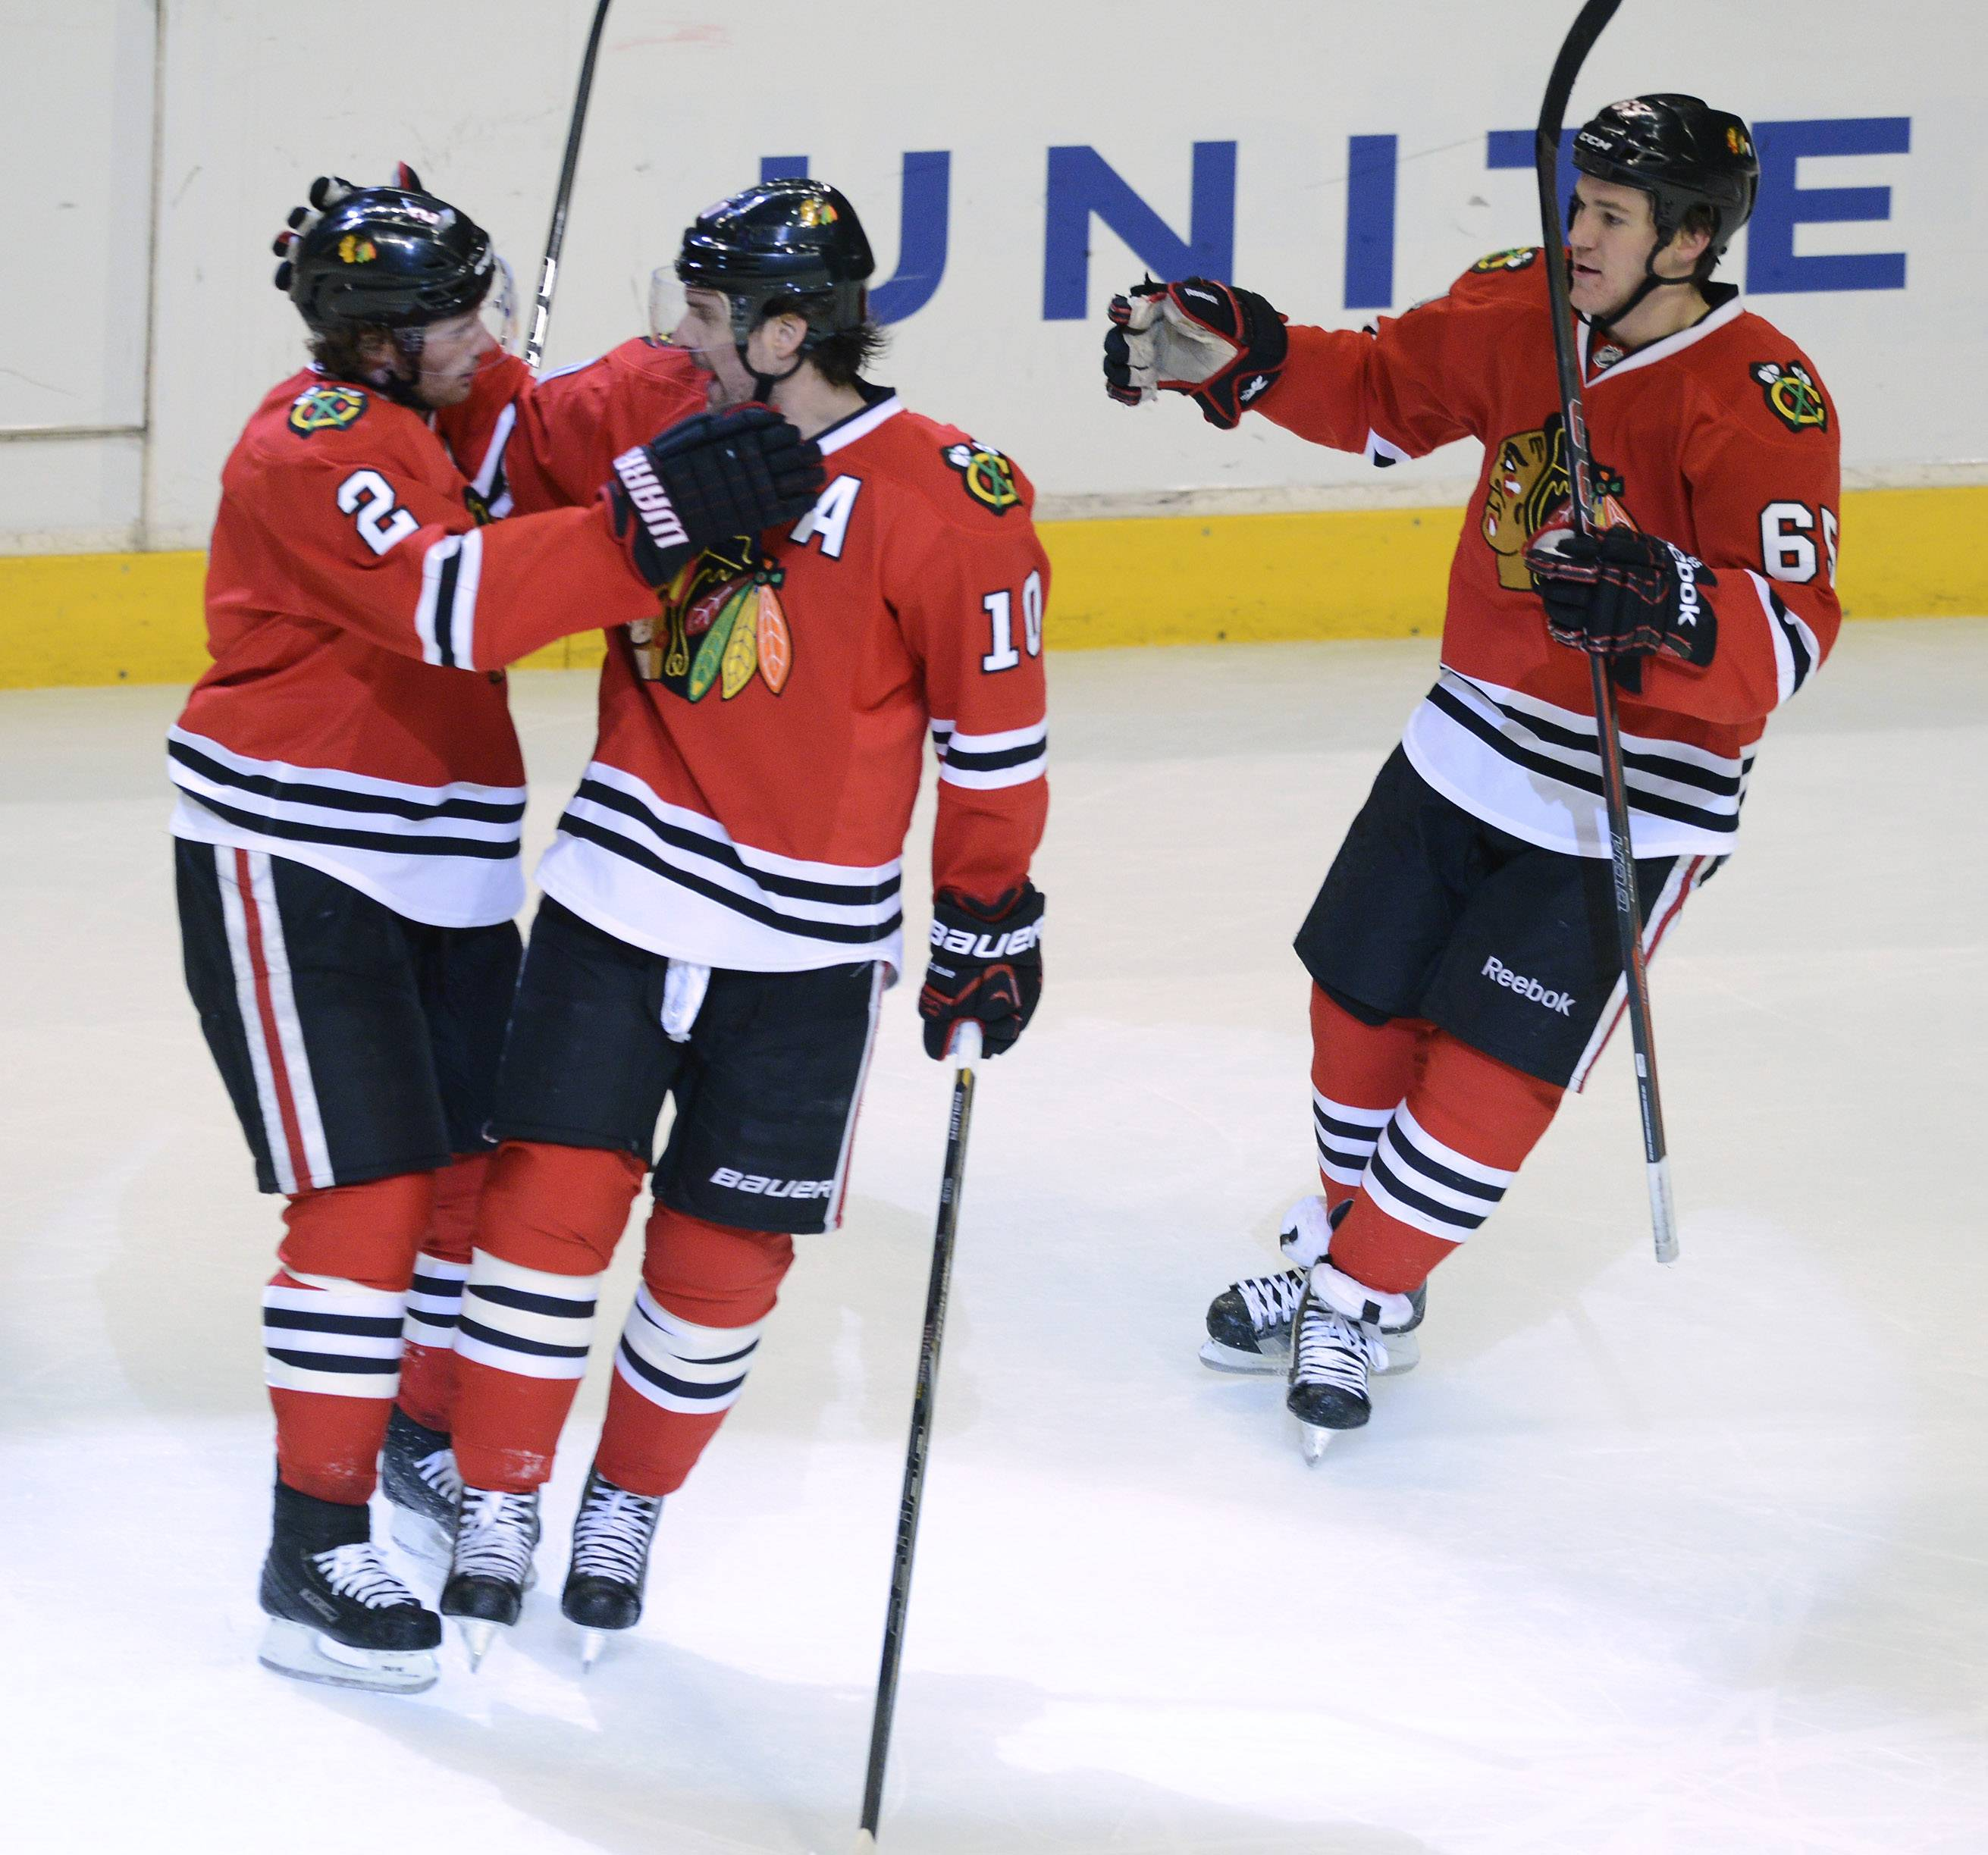 Duncan Keith, left, celebrates his second-period goal with teammates Patrick Sharp, middle, and Andrew Shaw during Tuesday's 4-2 victory over the Stars.